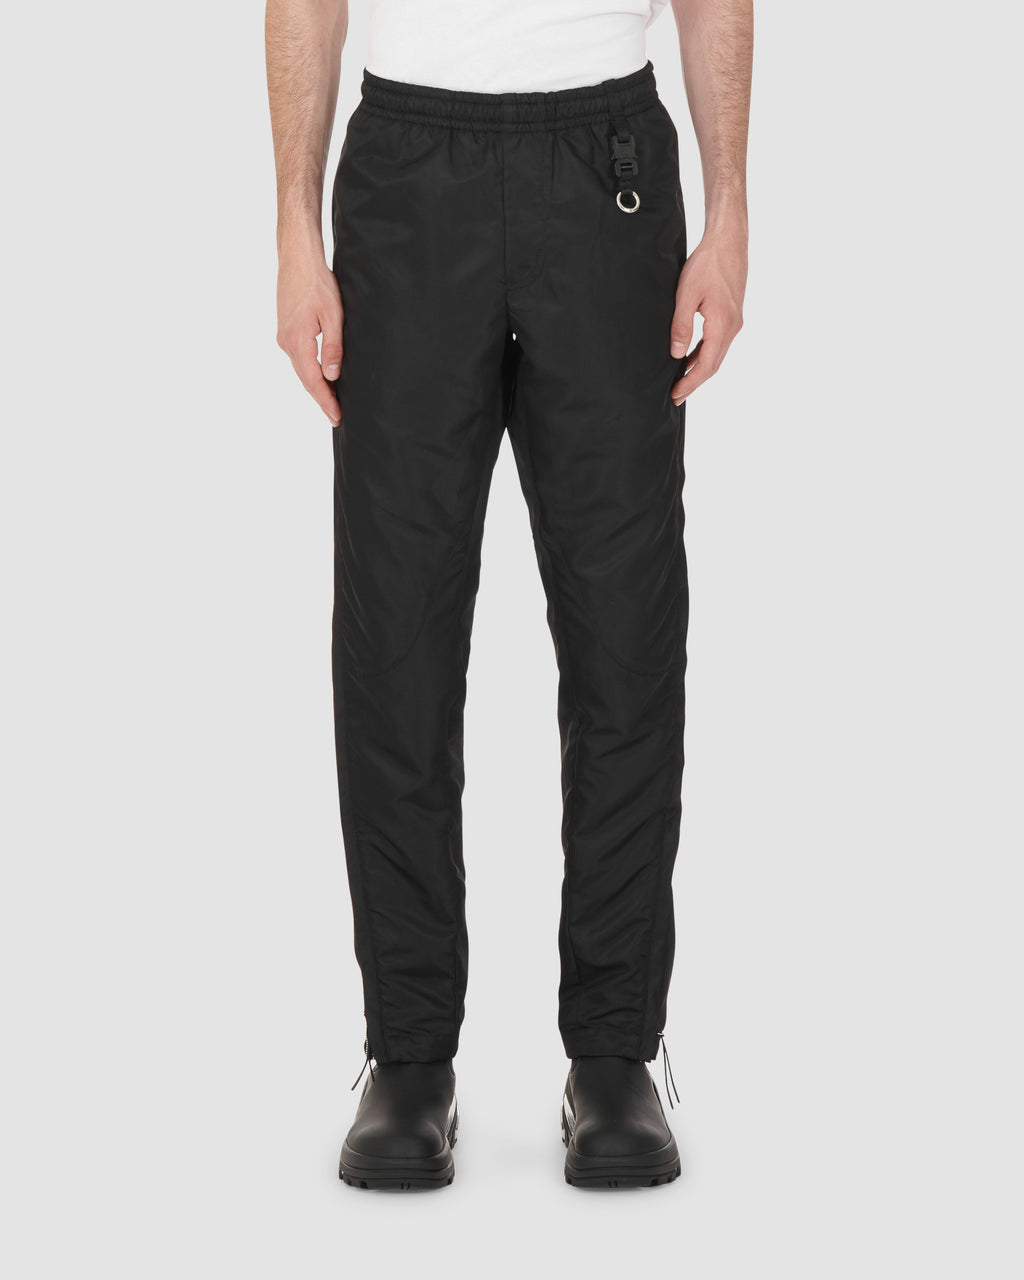 1017 ALYX 9SM | BLACK SWEATPANT | Pants | Black, Google Shopping, Man, MEN, PANTS, S20, S20 Drop II, Trousers